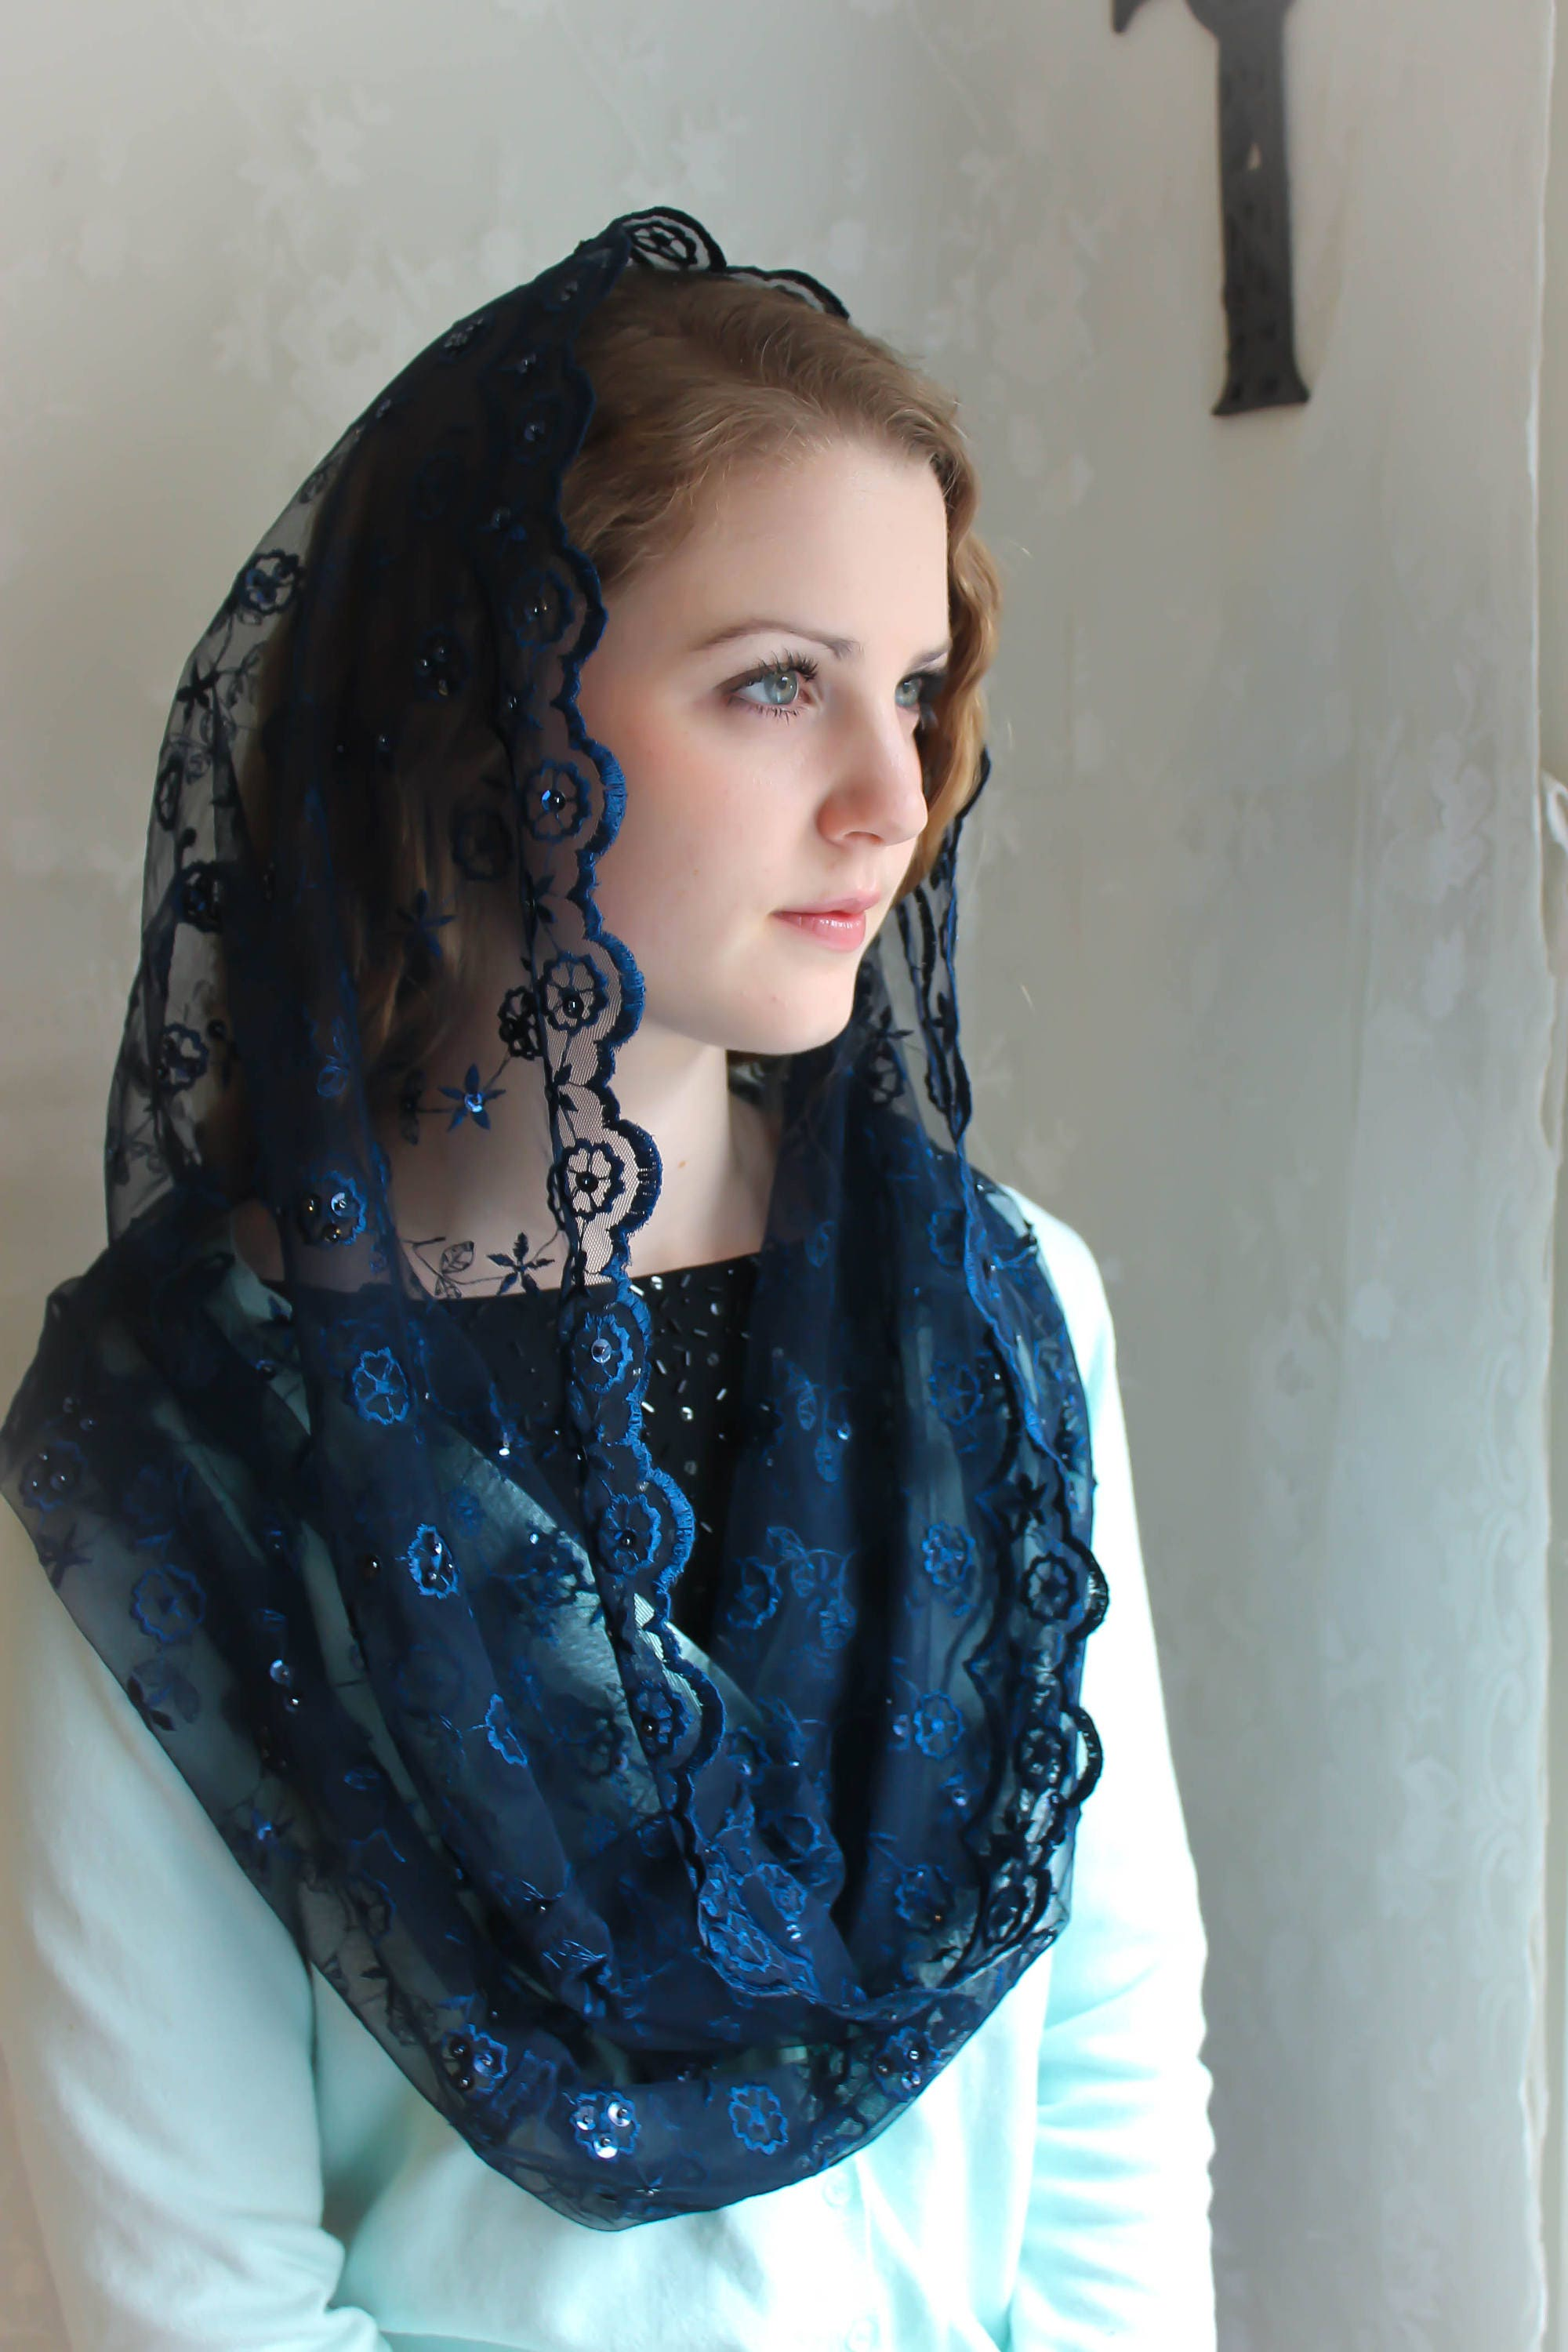 Evintage Veilsnavy Blue Beaded Embroidered Lace Chapel Veil